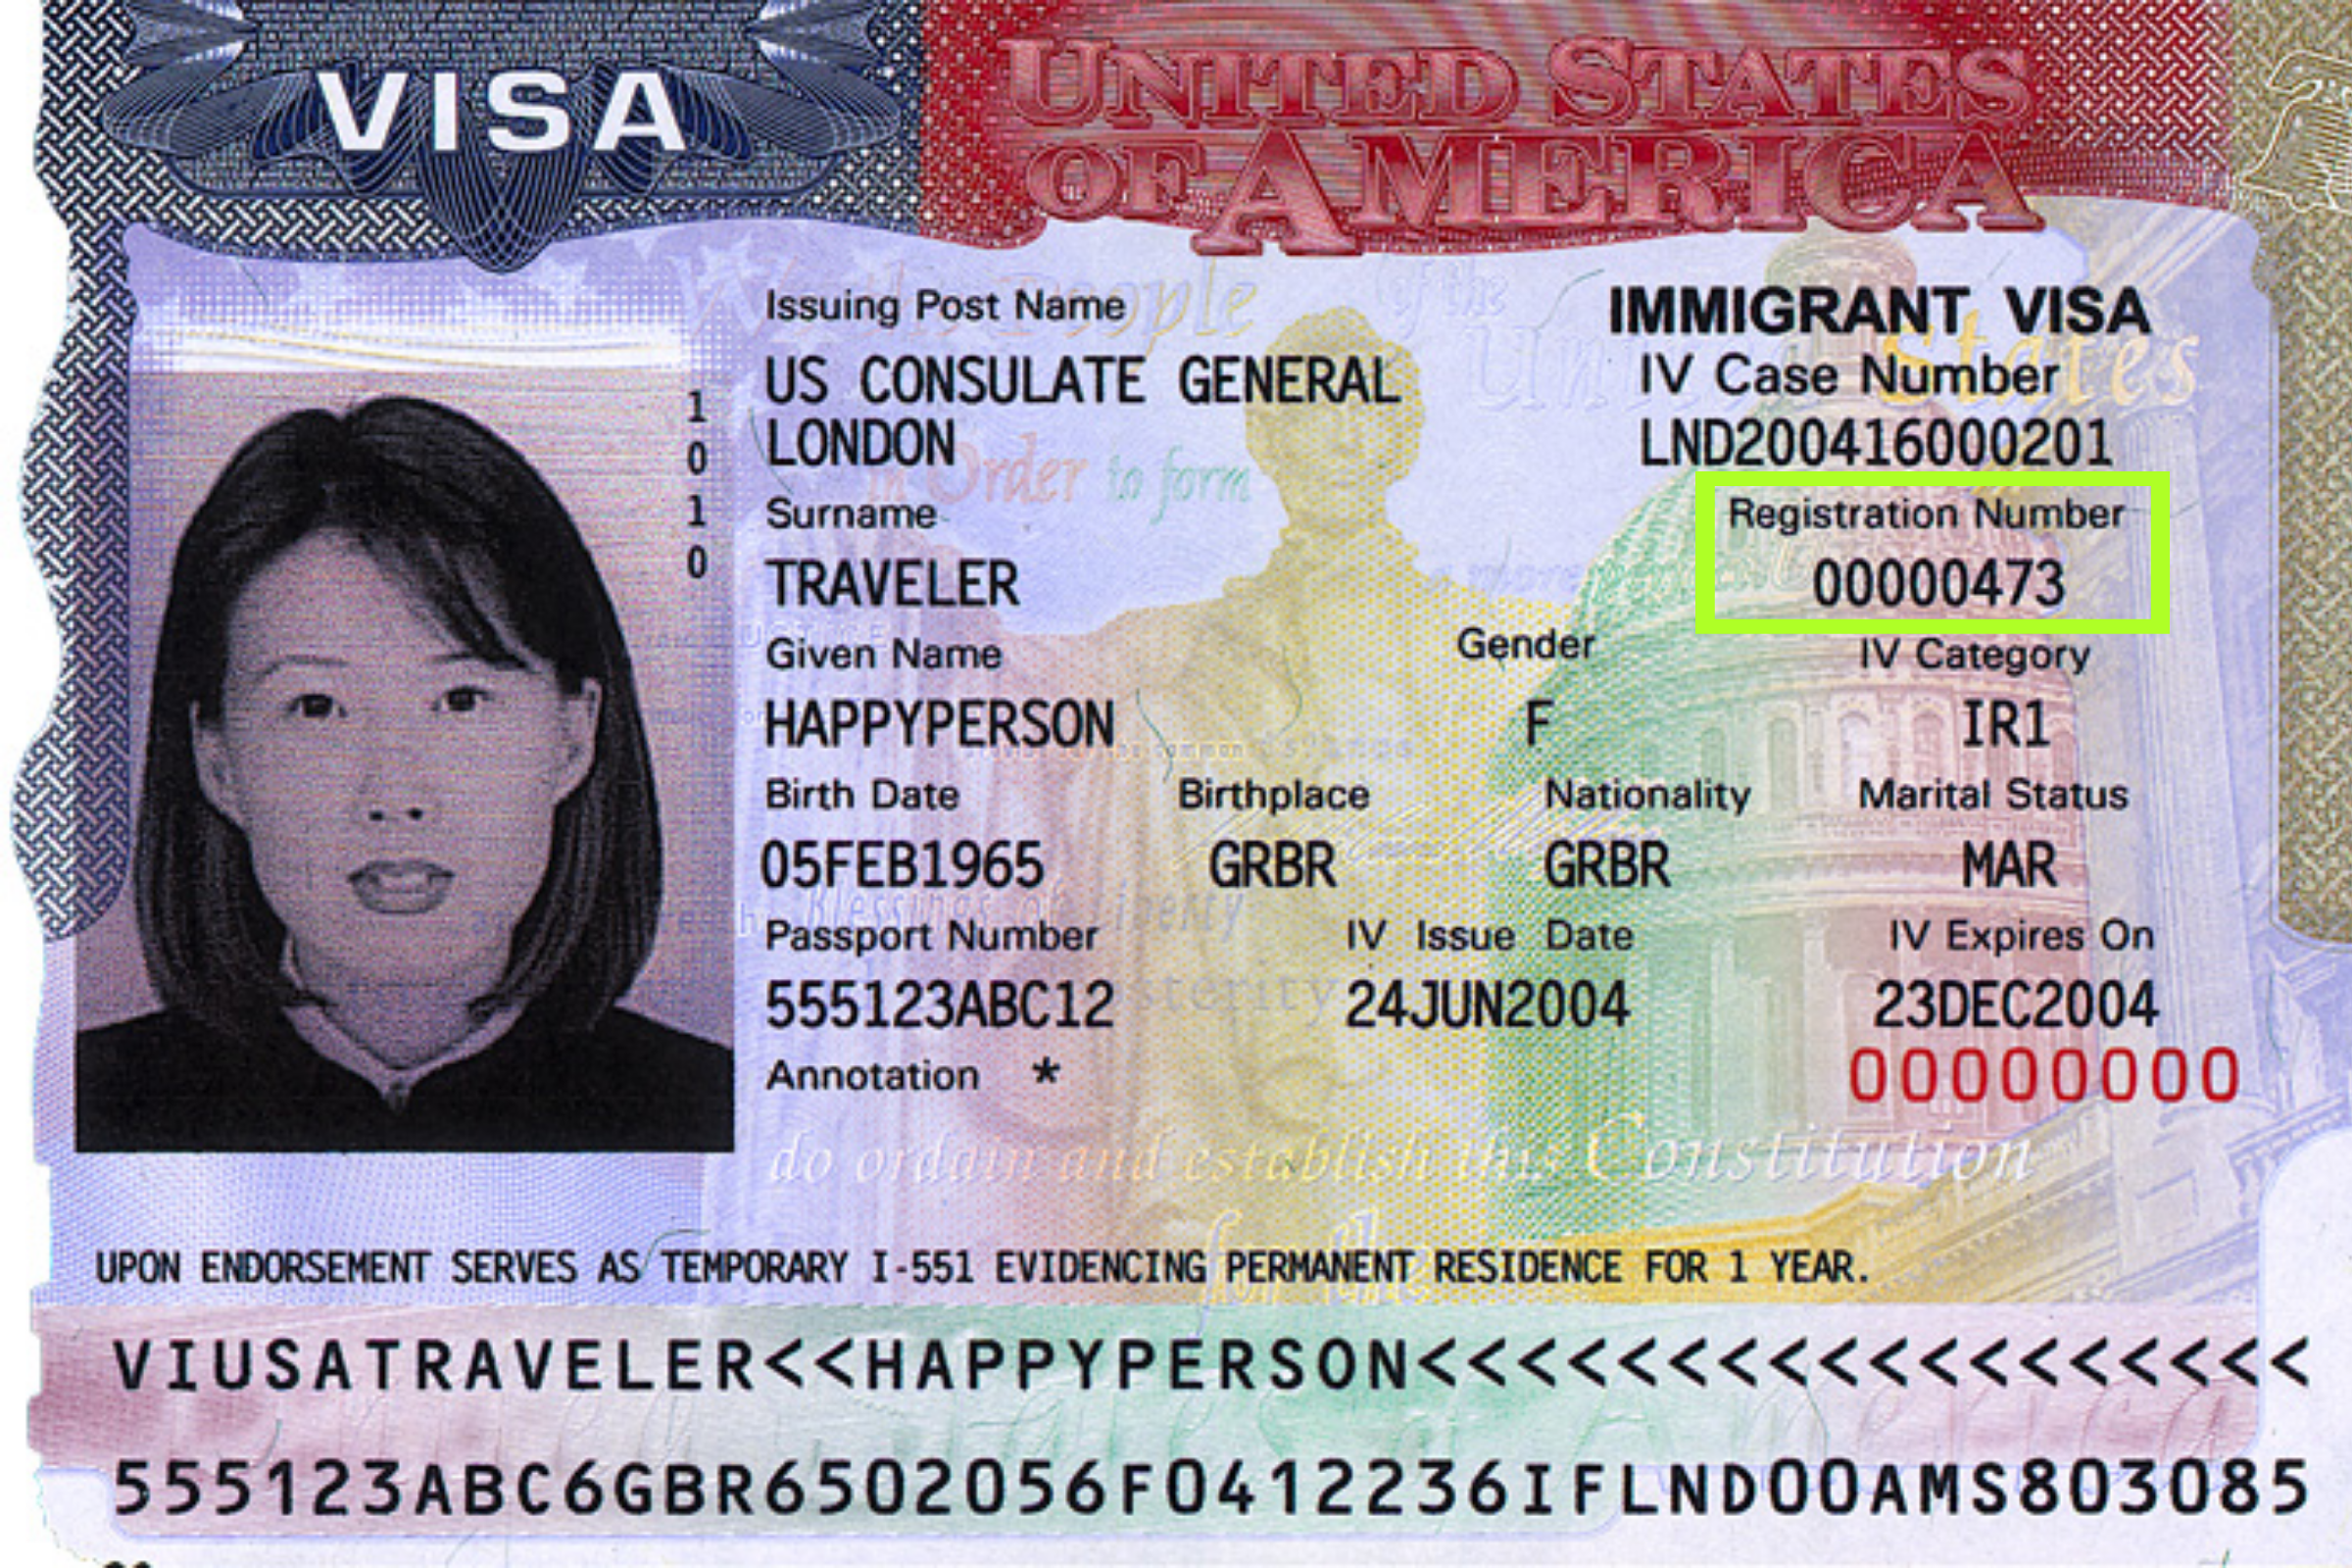 Where Can I Find My Alien Registration Number?